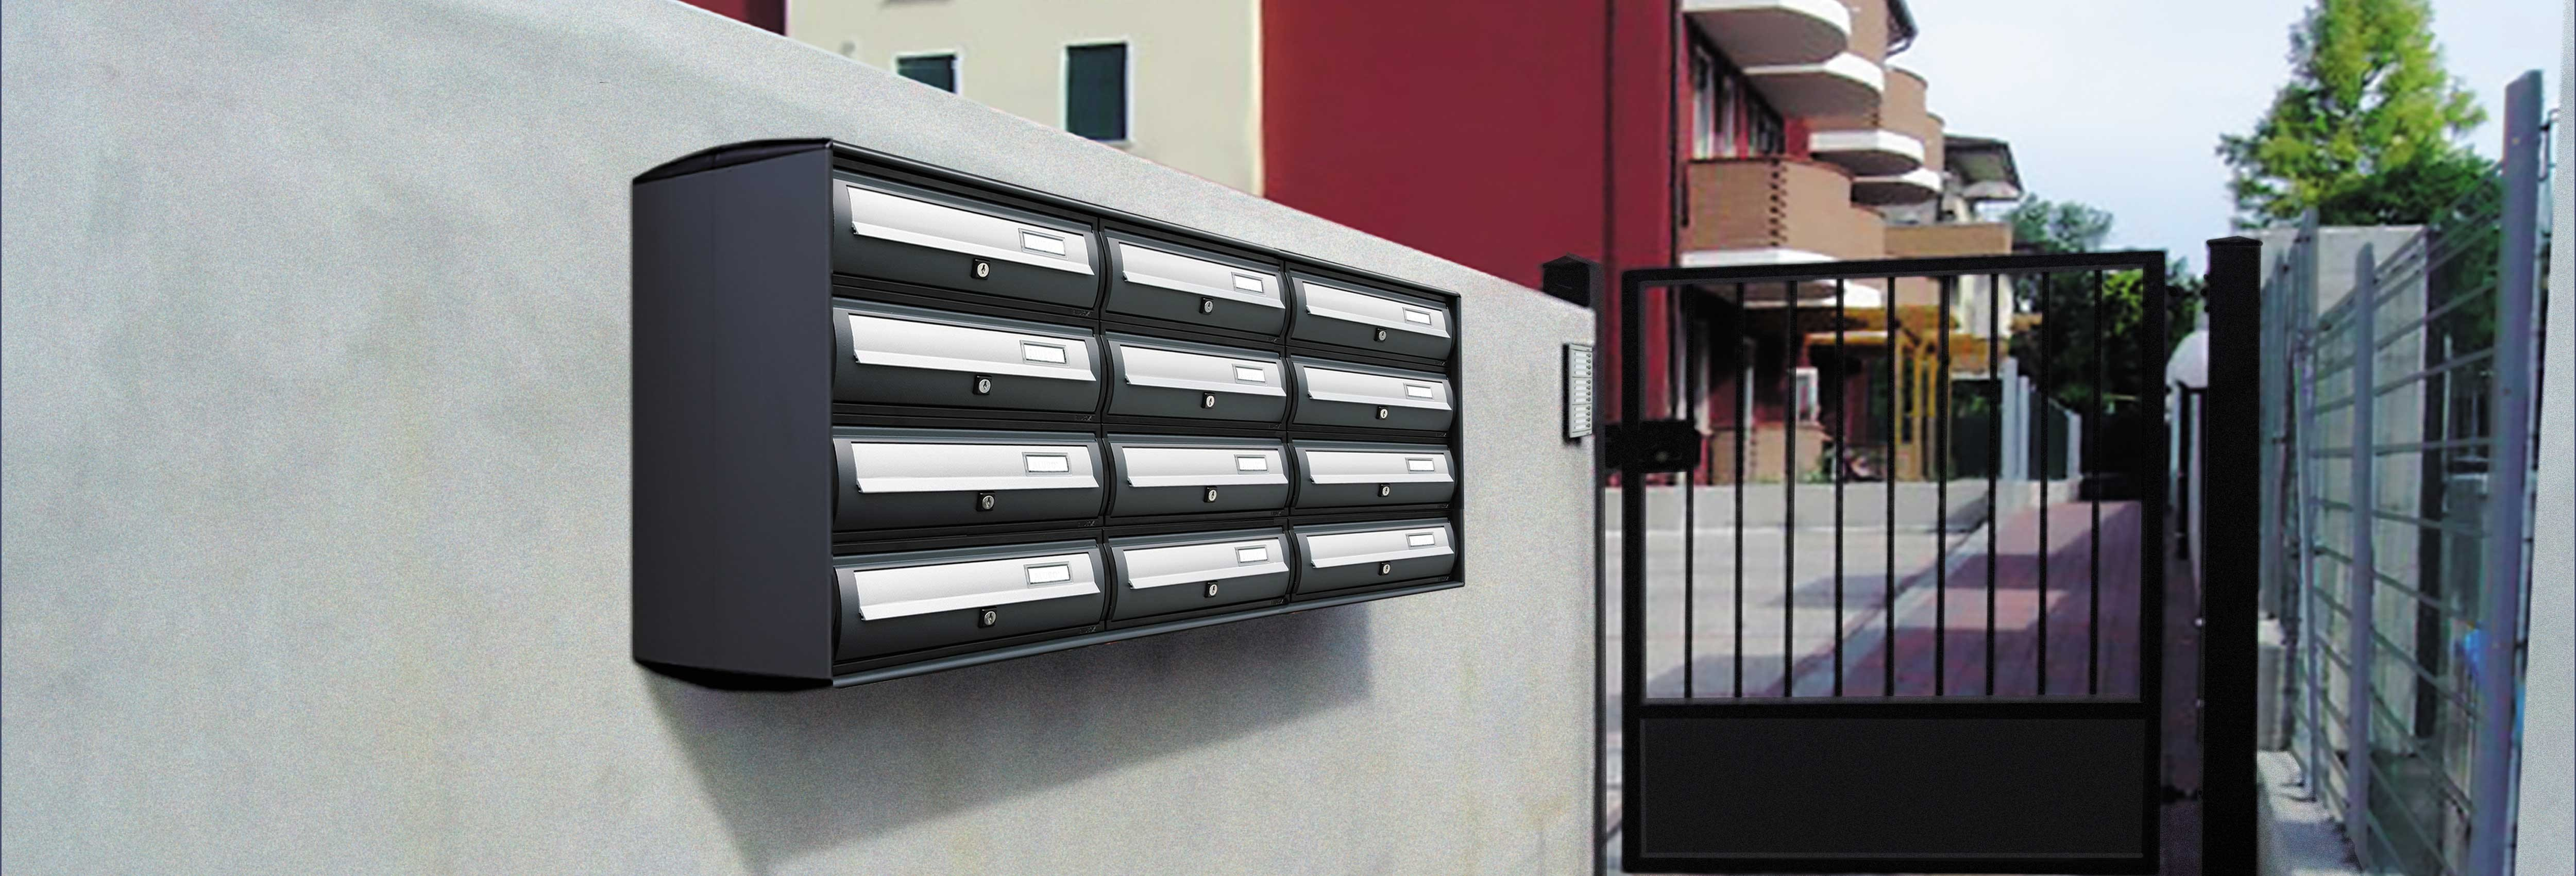 Curve 1 Mailbox set with outer casing and cast iron grey doors with silver flaps